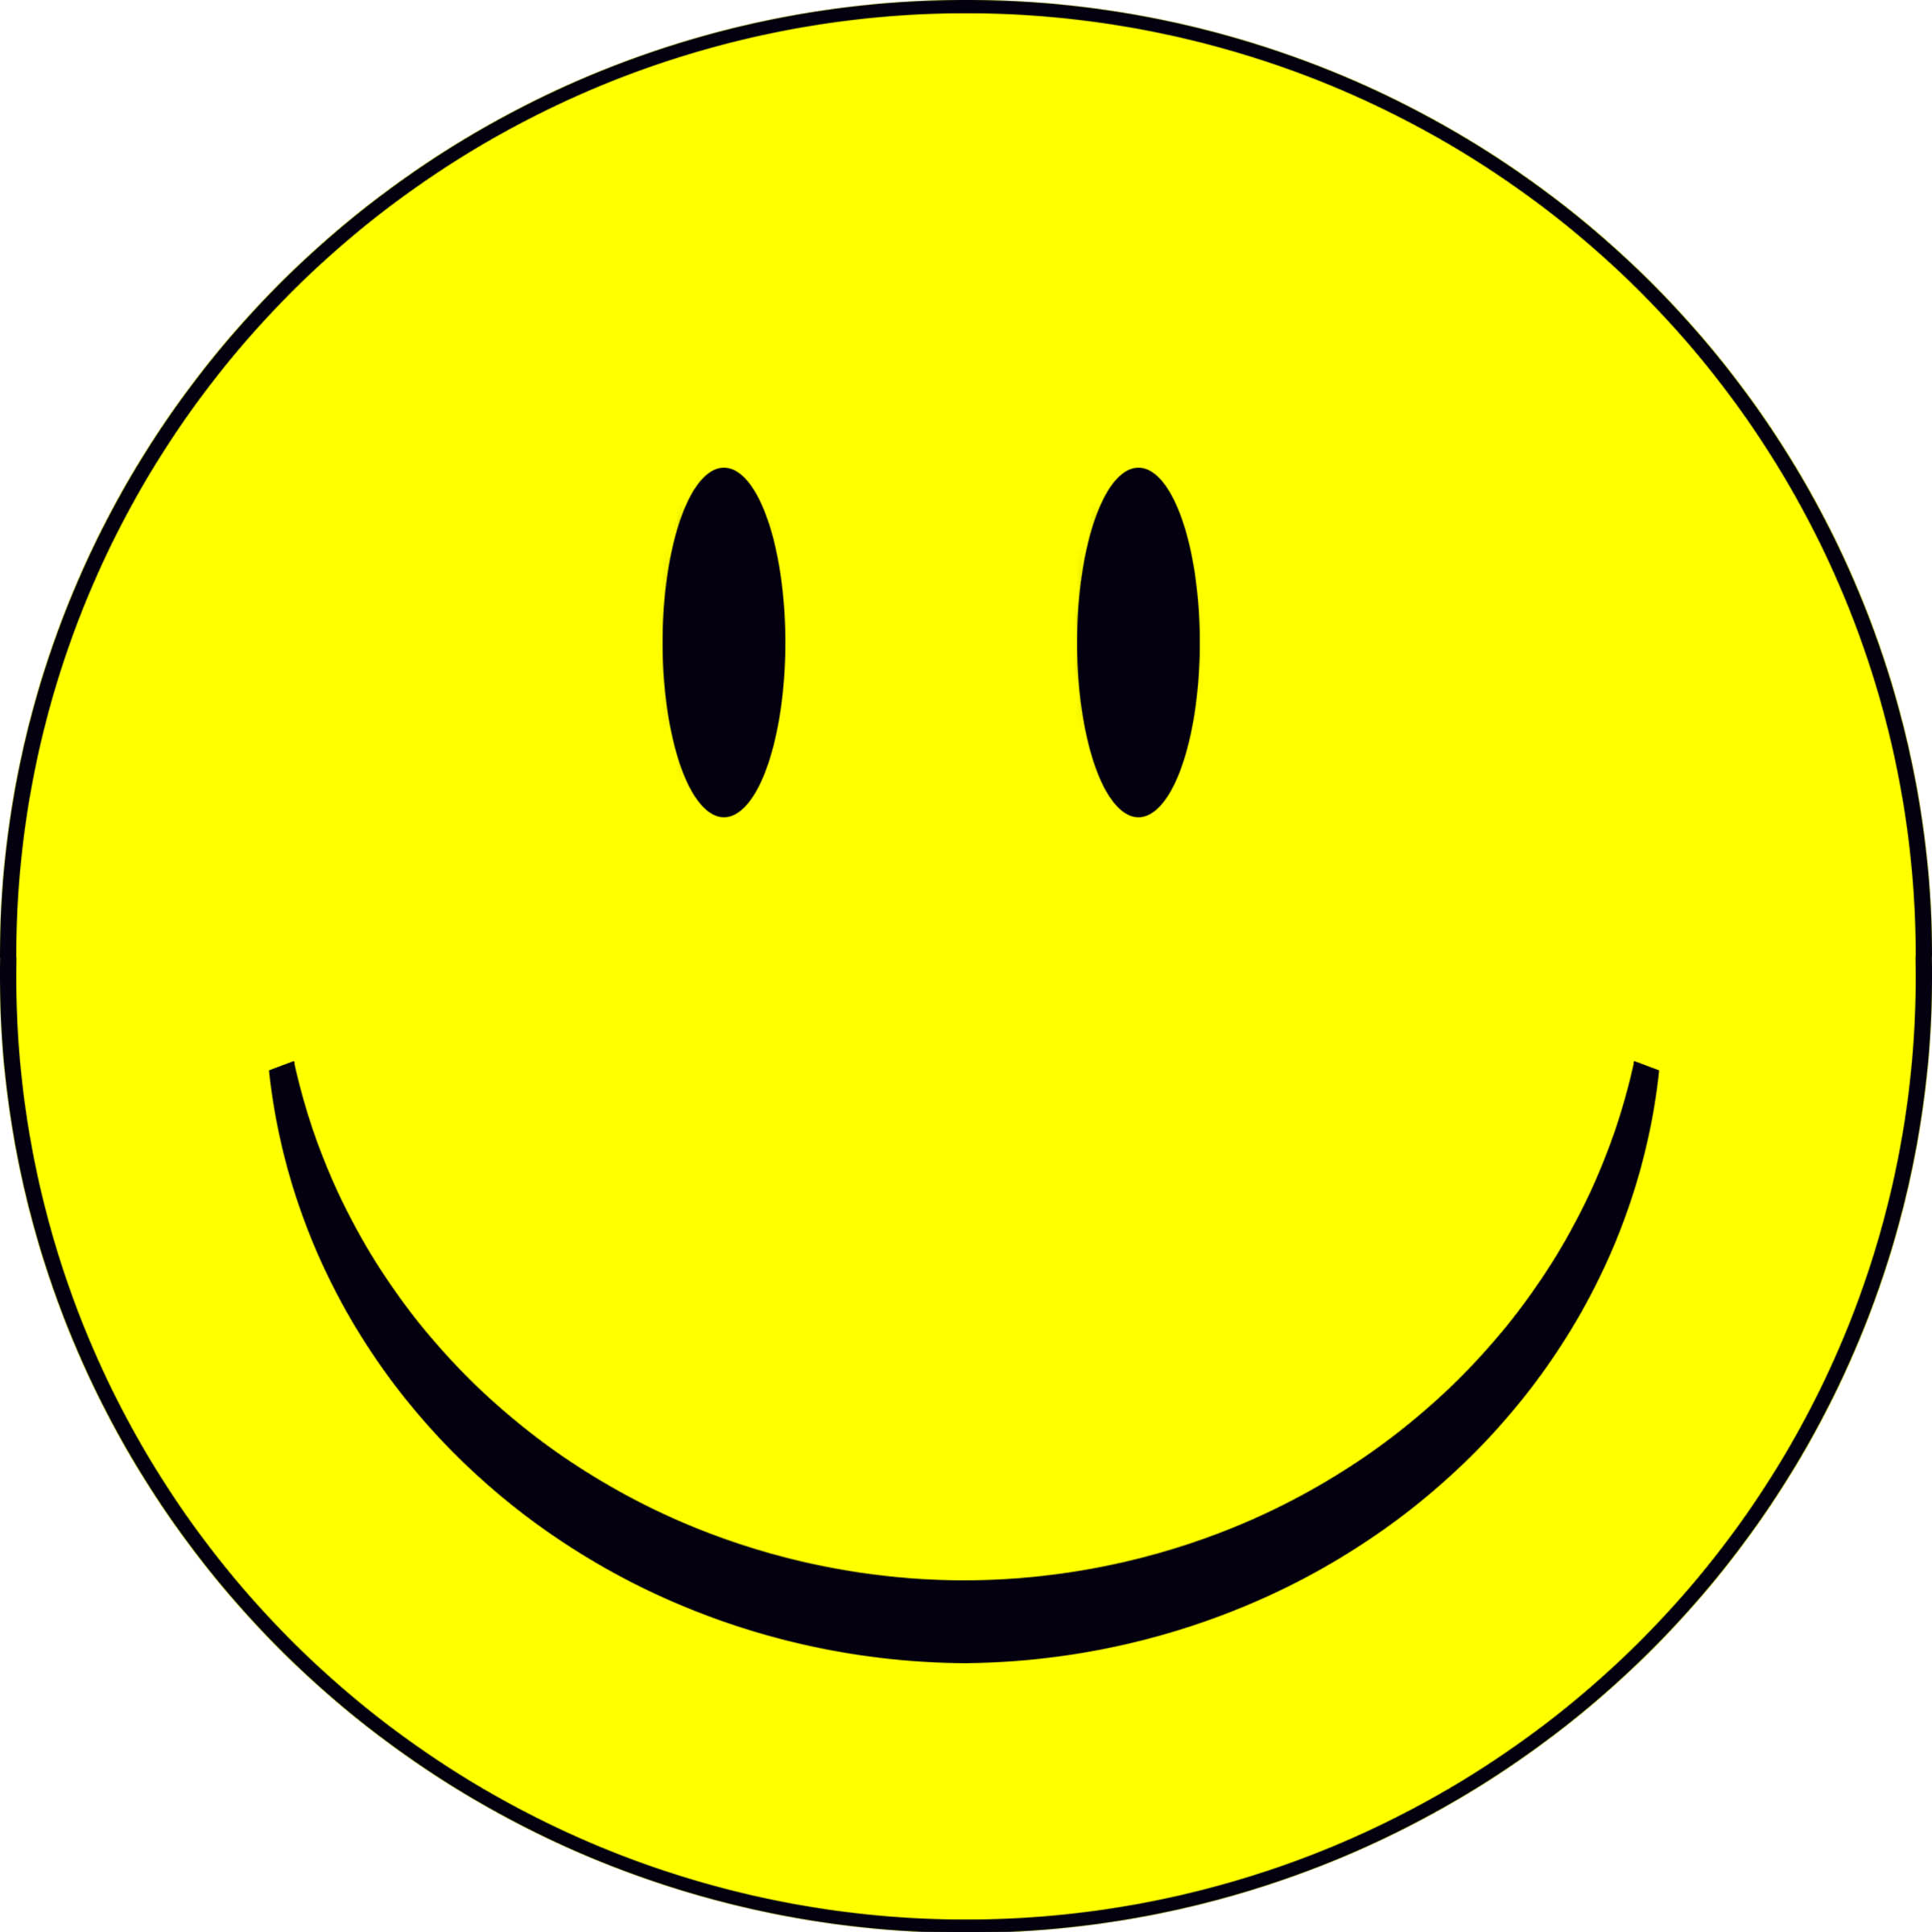 Smiley Face | Free Images at Clker.com - vector clip art ...